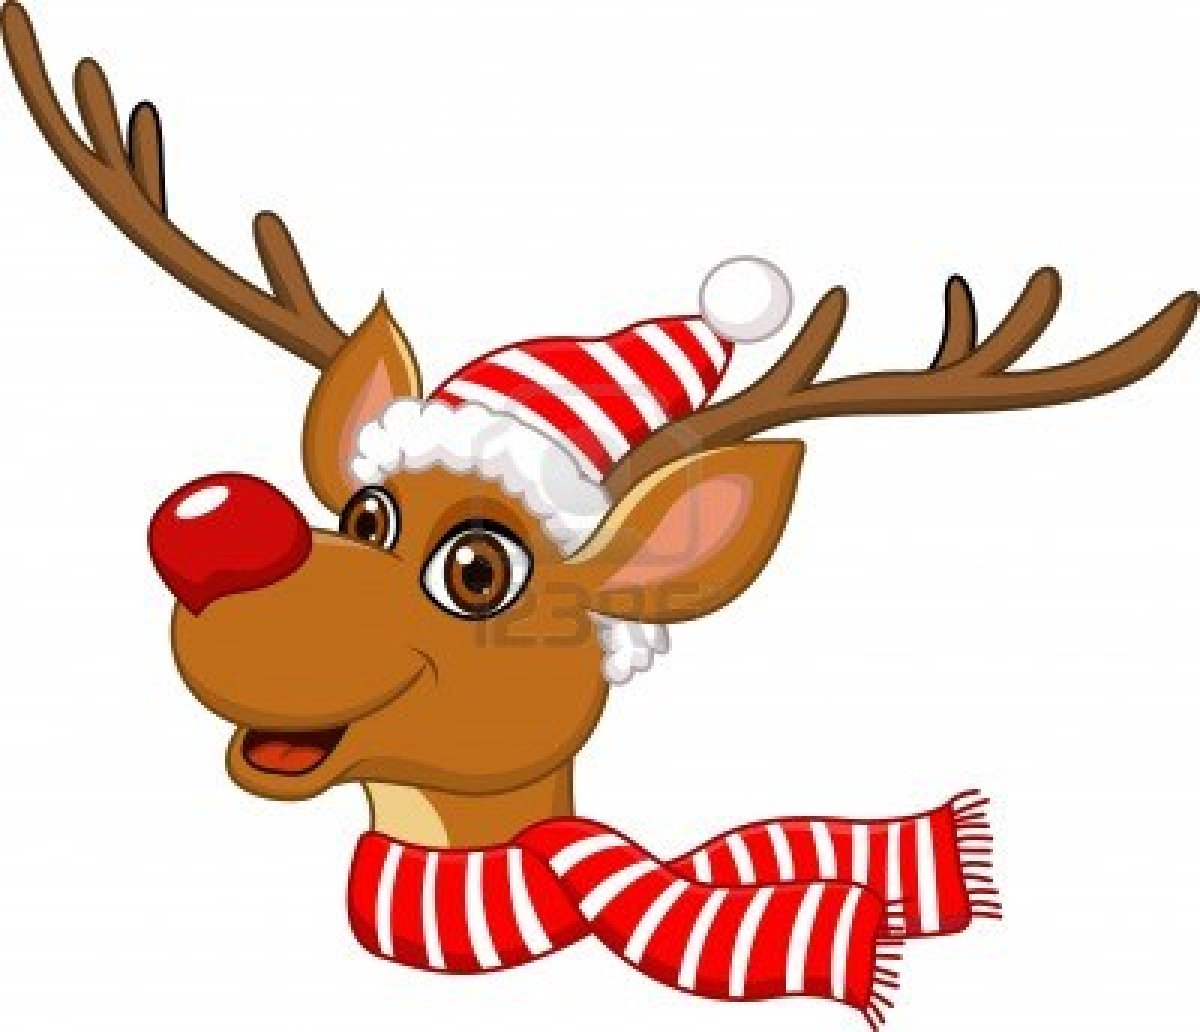 Merry Christmas clipart christmas parade Christmas Reindeer Christmas raideer graphics